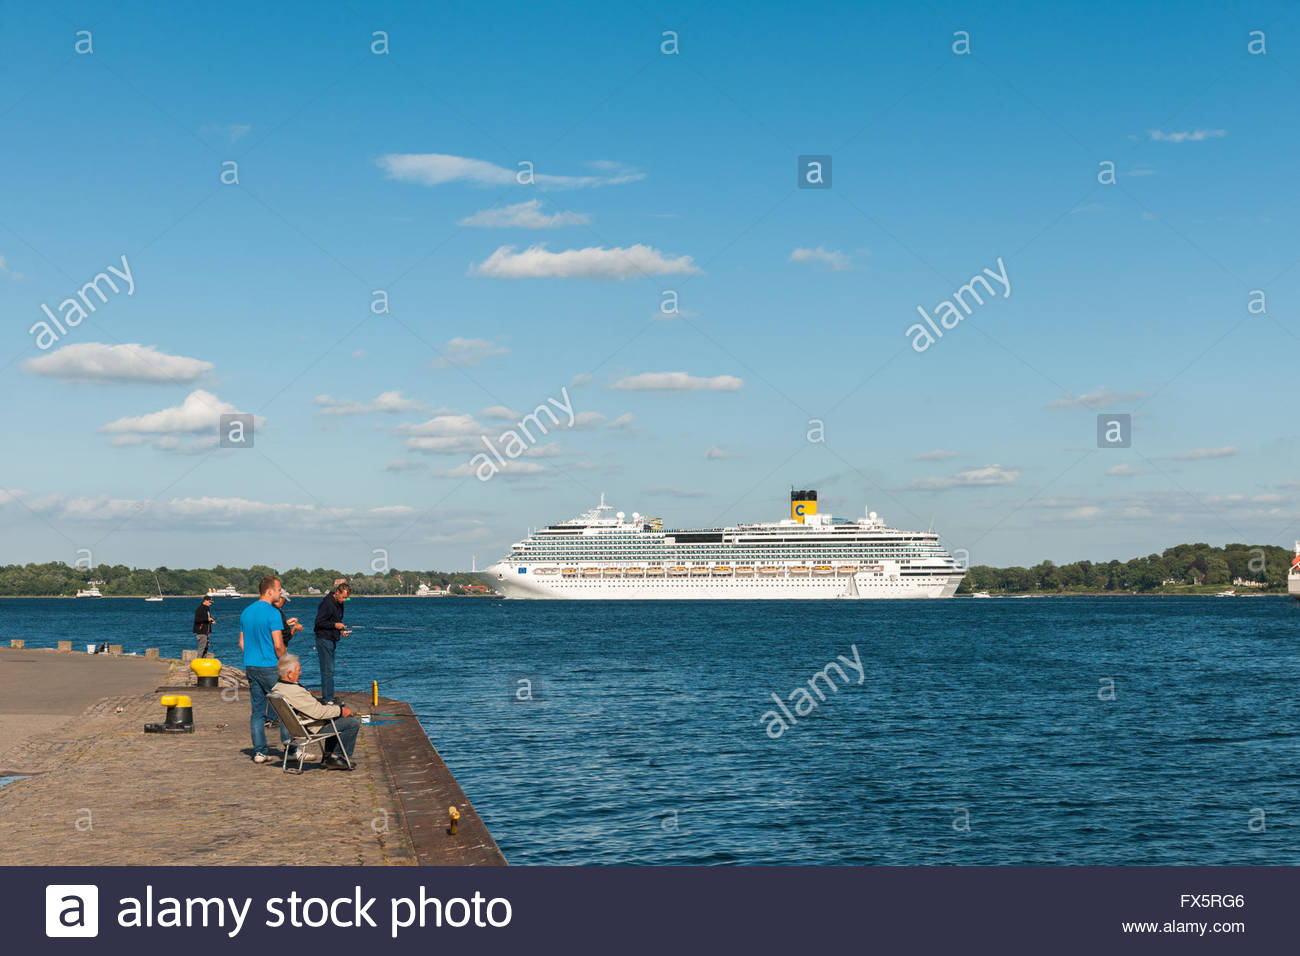 Cruise ship, Costa Pacifica, Kiel, Holtenau, Schleswig-Holstein, Germany / Kiel - Stock Image